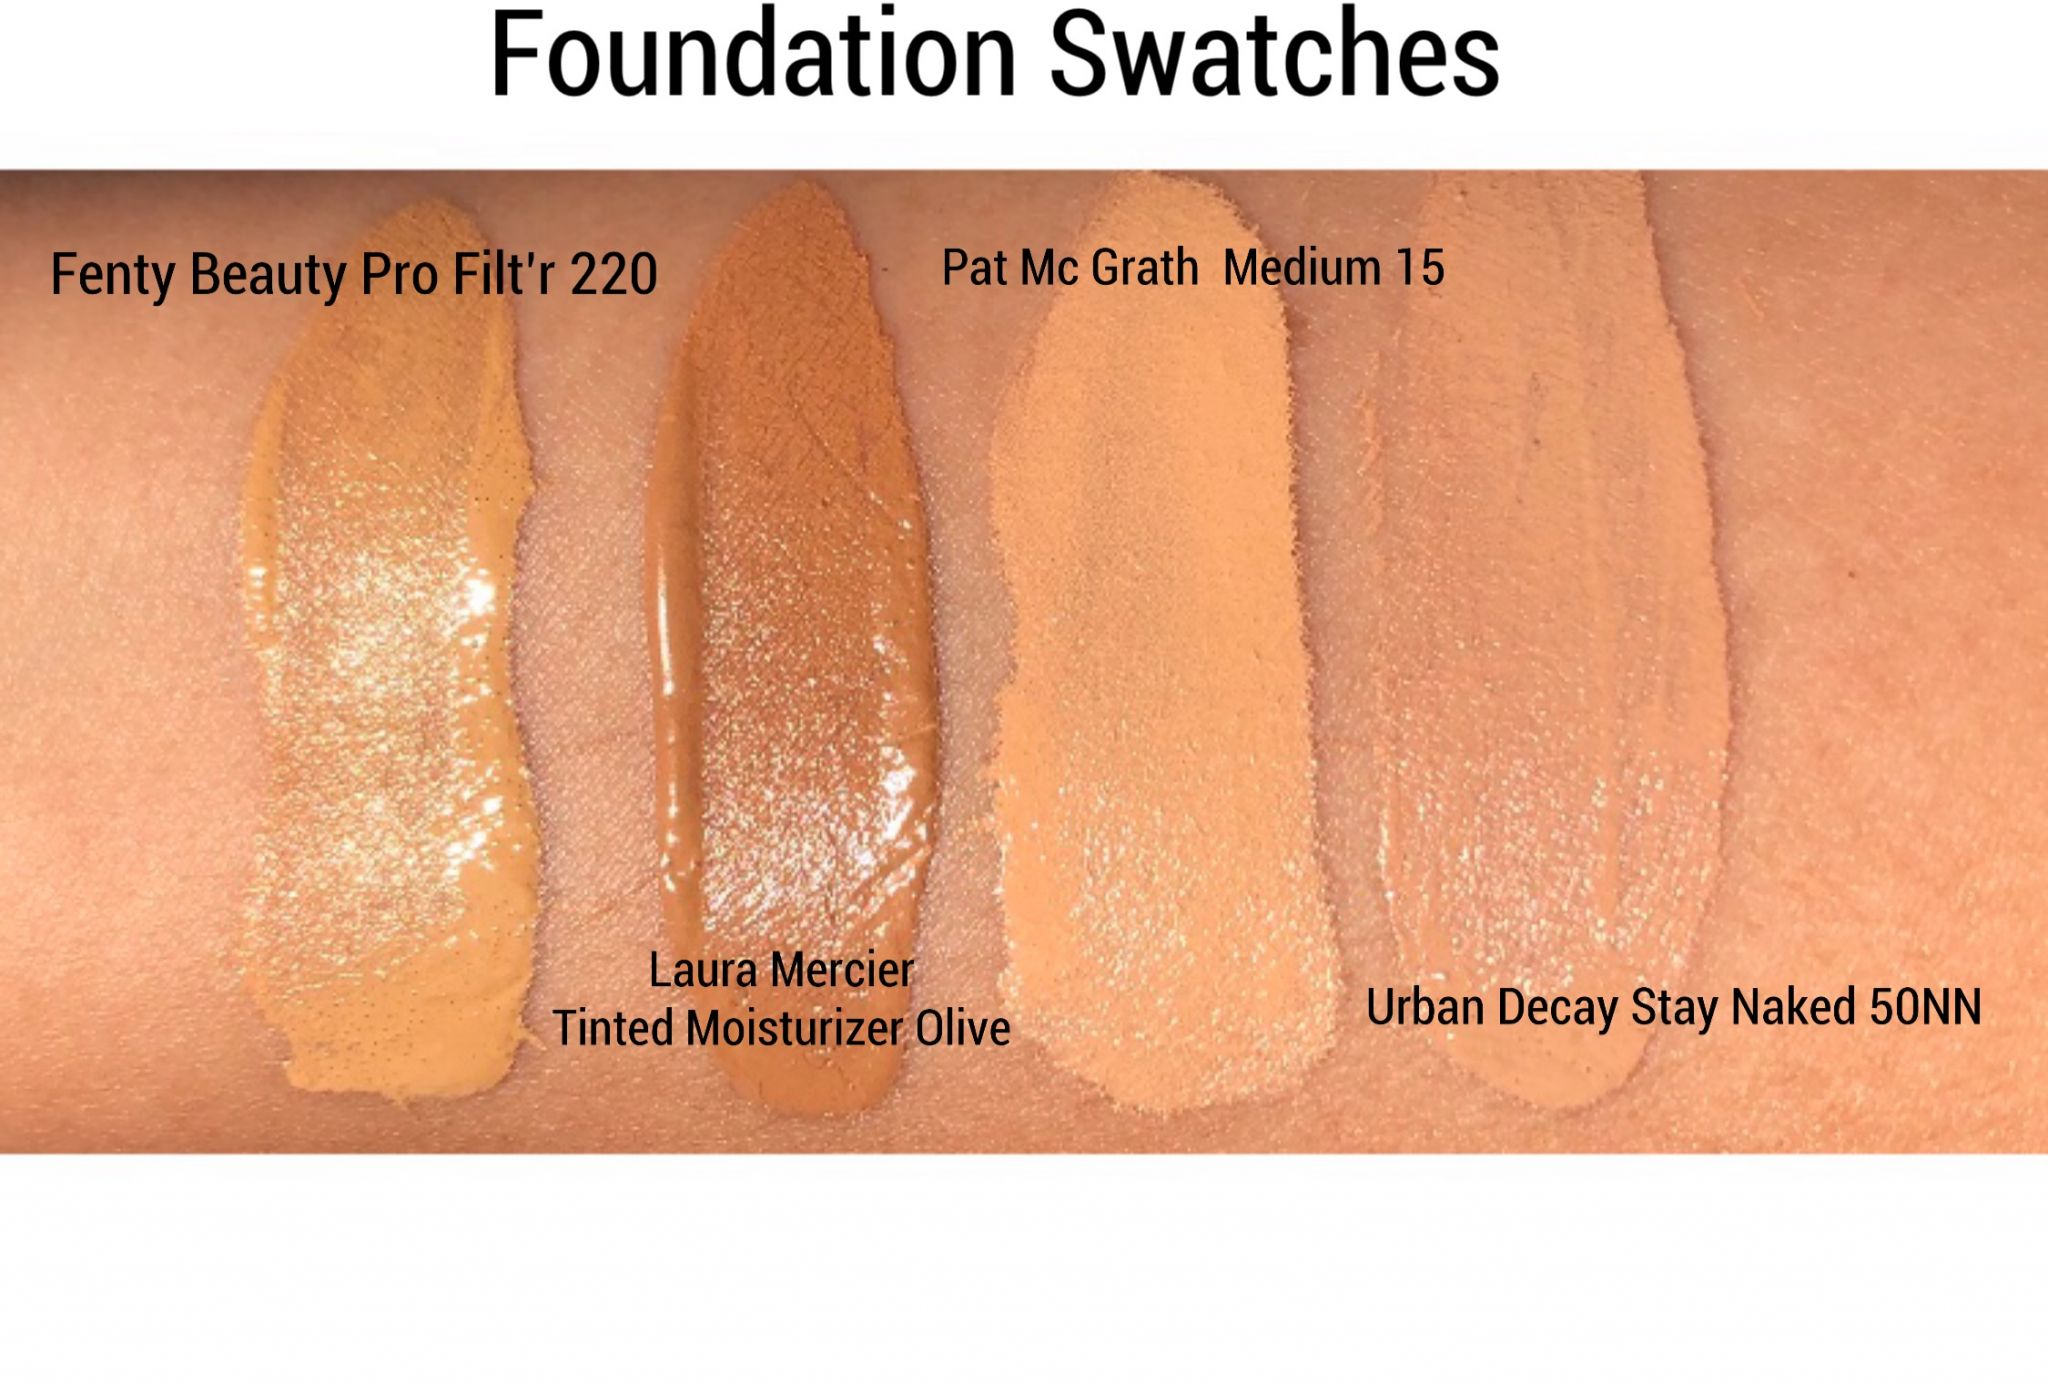 Foundation Swatches Cali Beaute